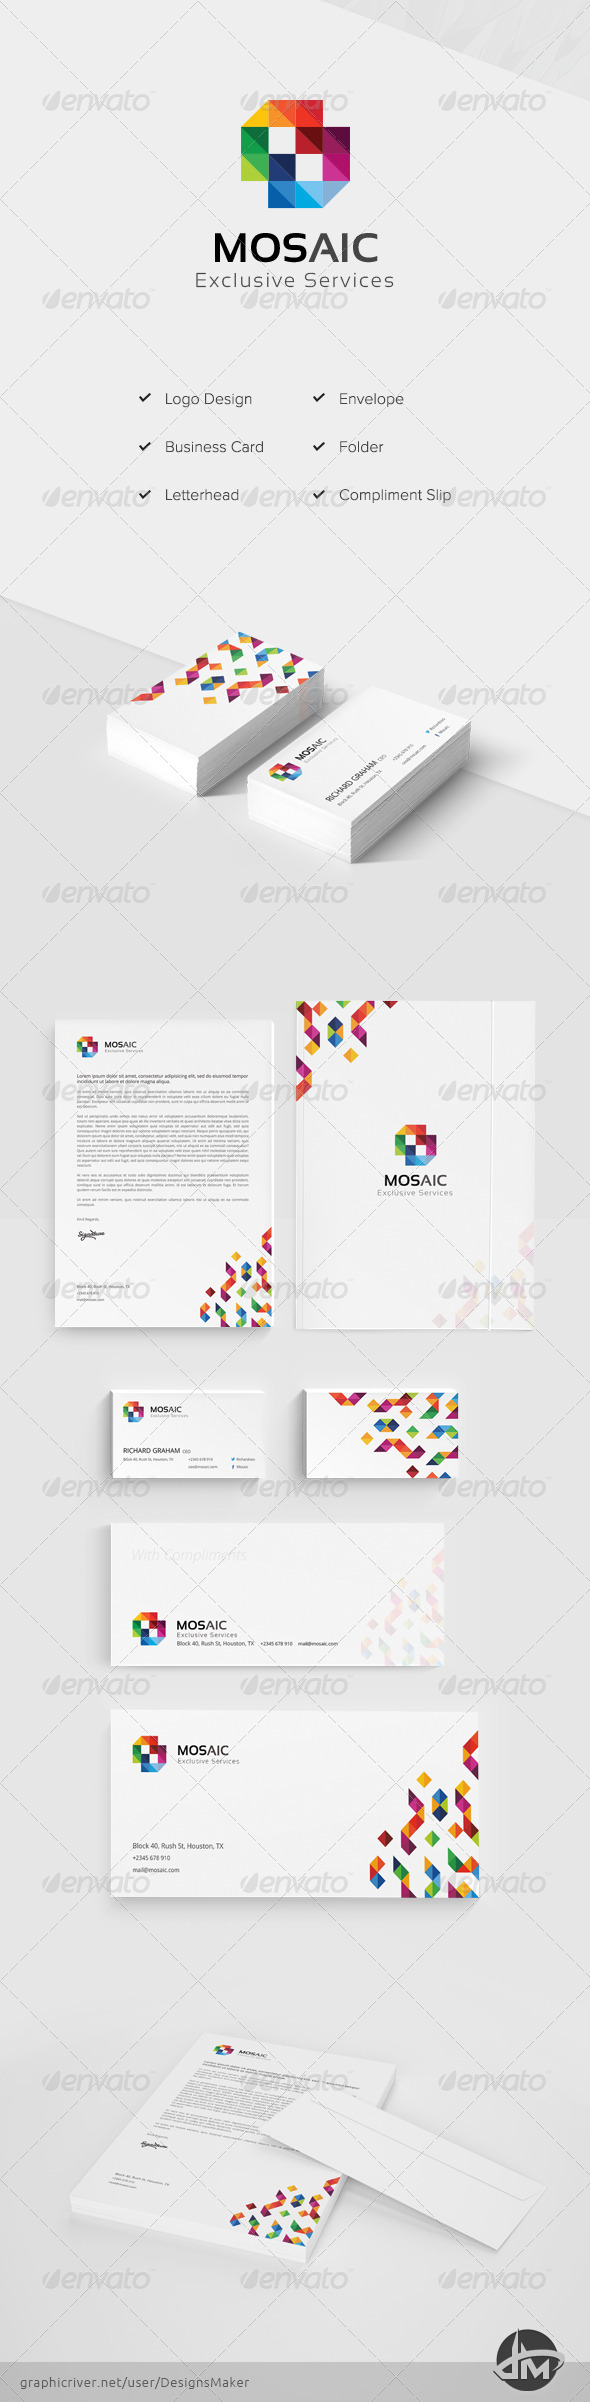 Mosaic Stationery Pack - Stationery Print Templates